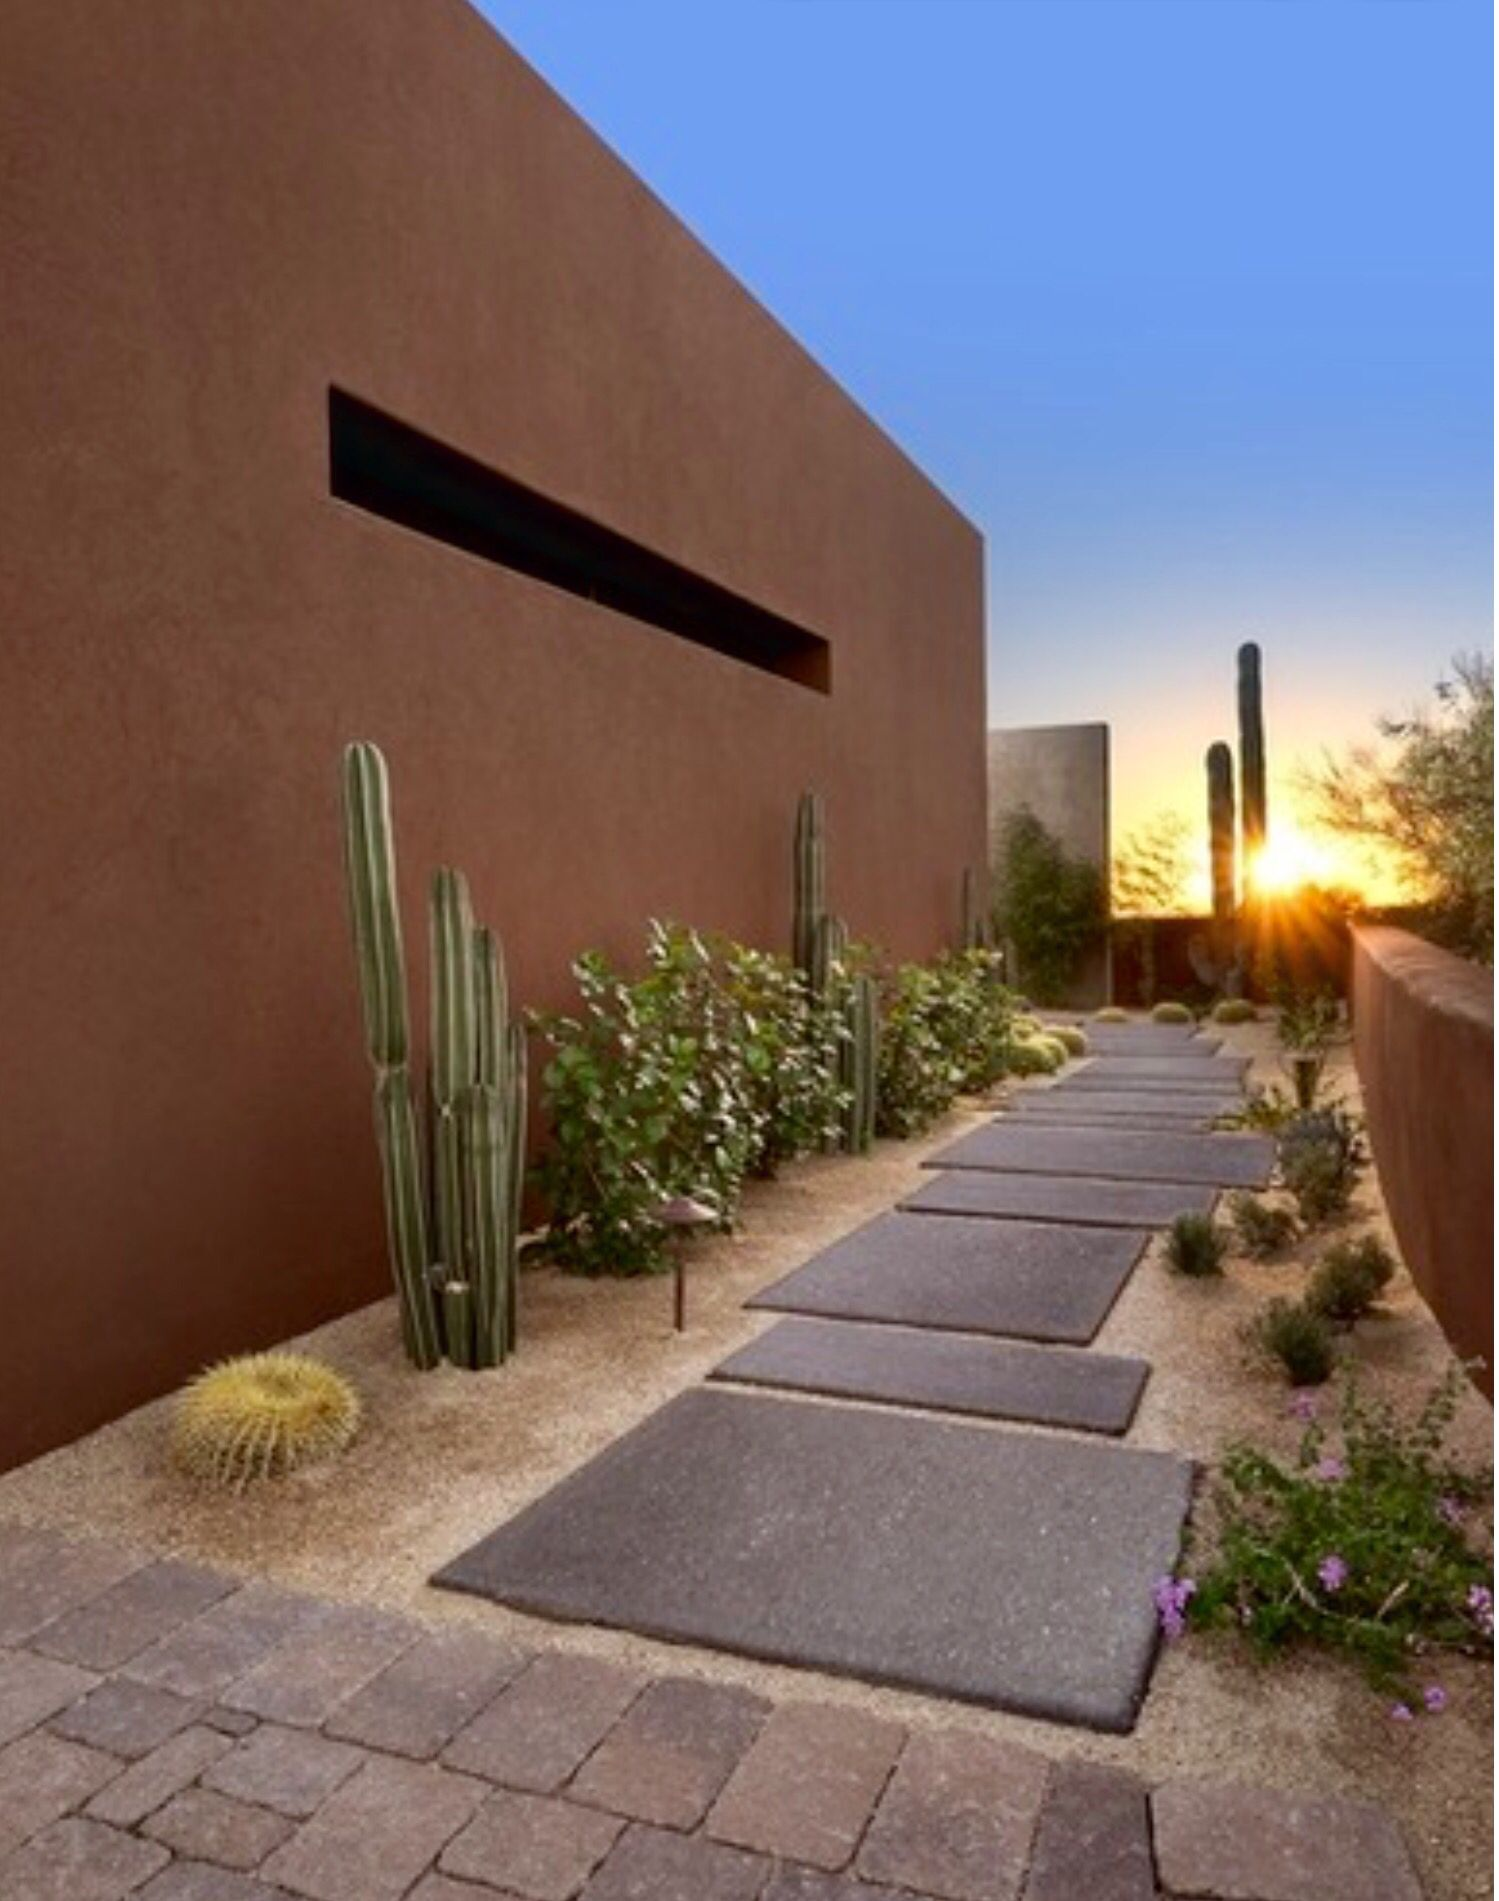 Simple and appropriate for climate zone | Landscape Design ...